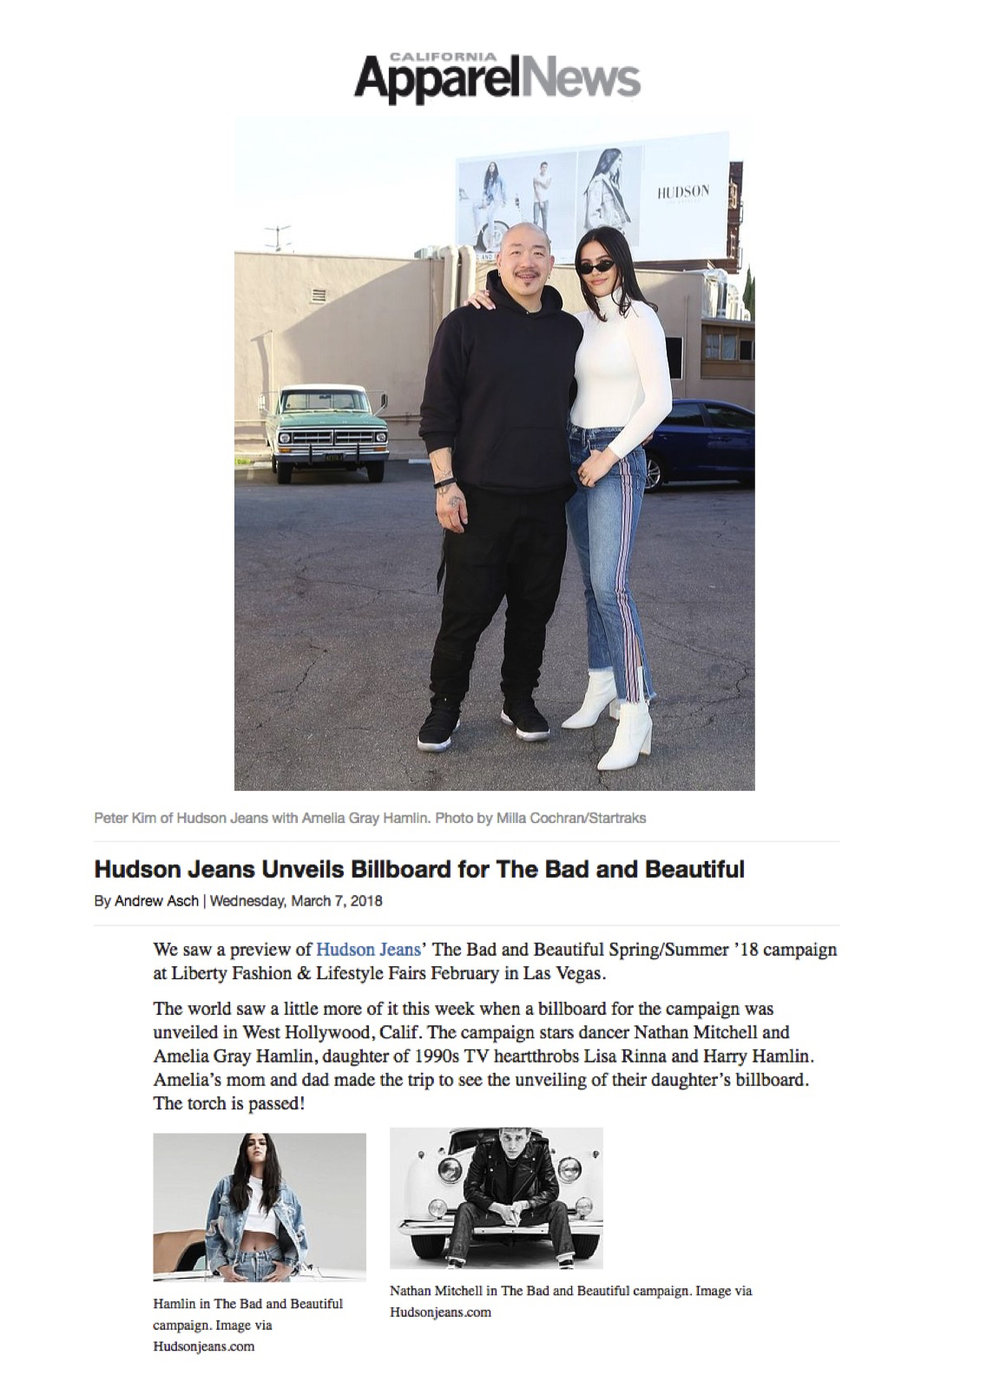 ApparelNews_Amelia_HudsonBillboard3.7.18.jpg